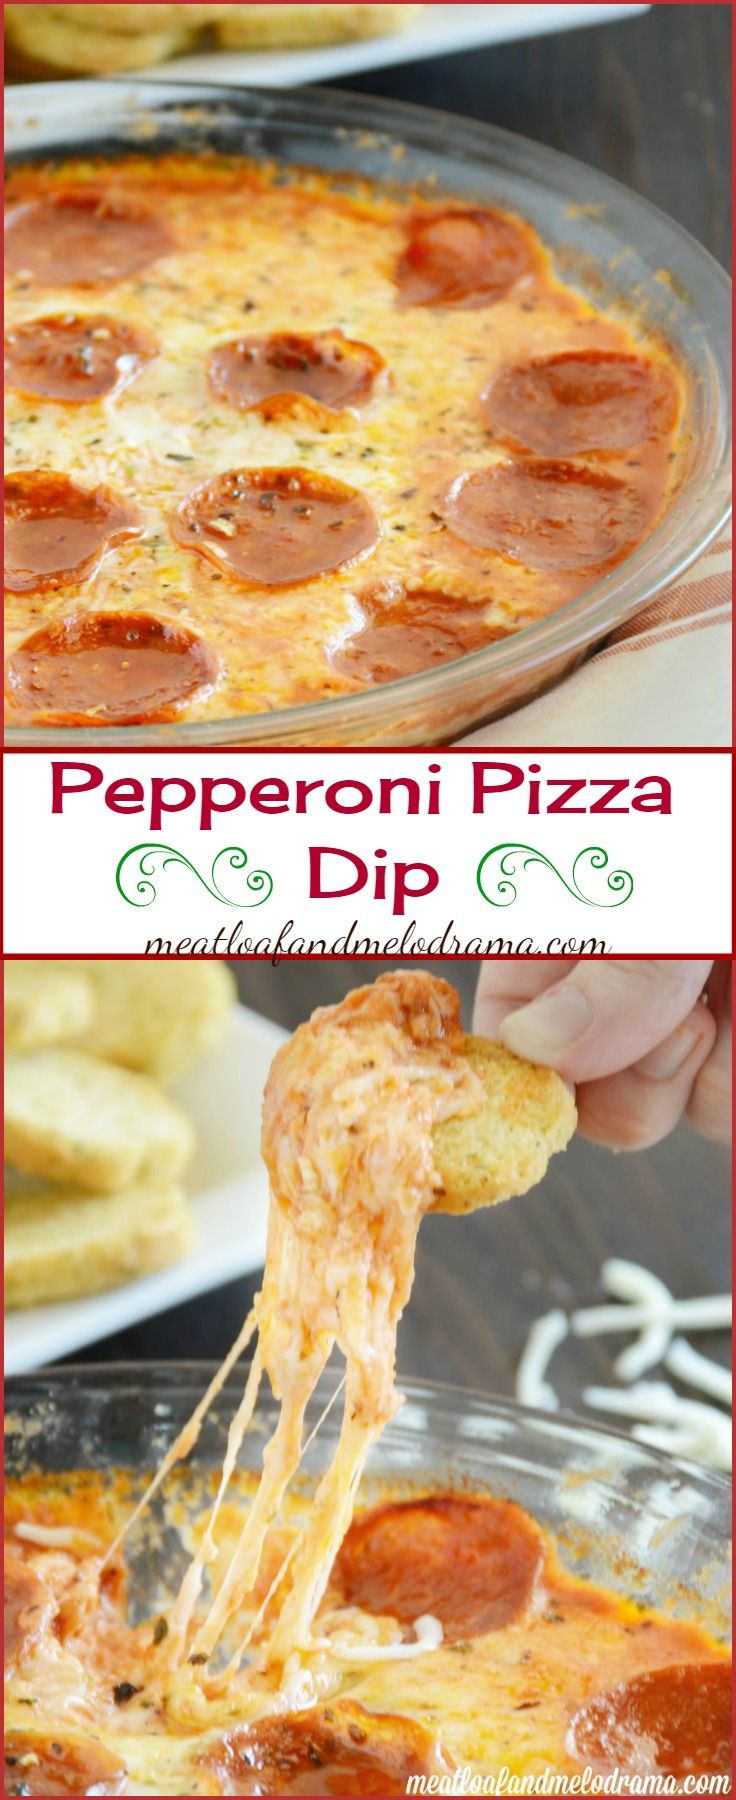 Pepperoni Pizza Dip -- This cheesy dip recipe is super easy and makes a great snack or game day appetizer! #gamedayfood #partyfood